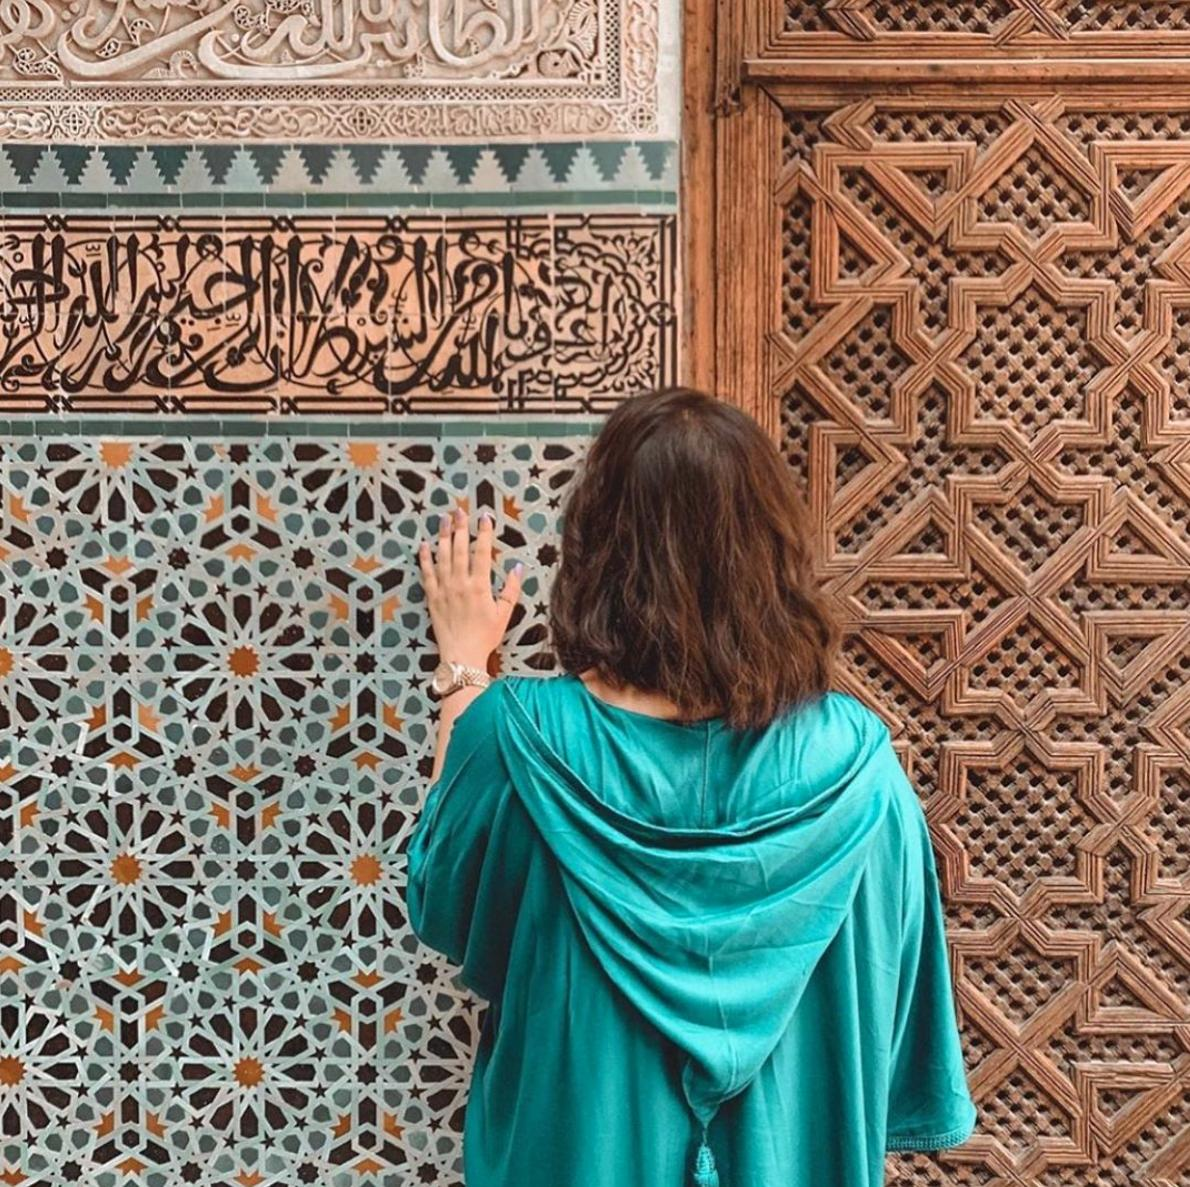 Beauty is in the detail. PH: @beniiz6 . . . #moroccophotography #natgeoexpeditions #sunday #sundayfunday #weekend #moroccoexperience #topmoroccophoto #kassrannoujoum #morocco #maroc #casablanca #marrakech #essaouira #liverpoolrestaurant #lovemorocco